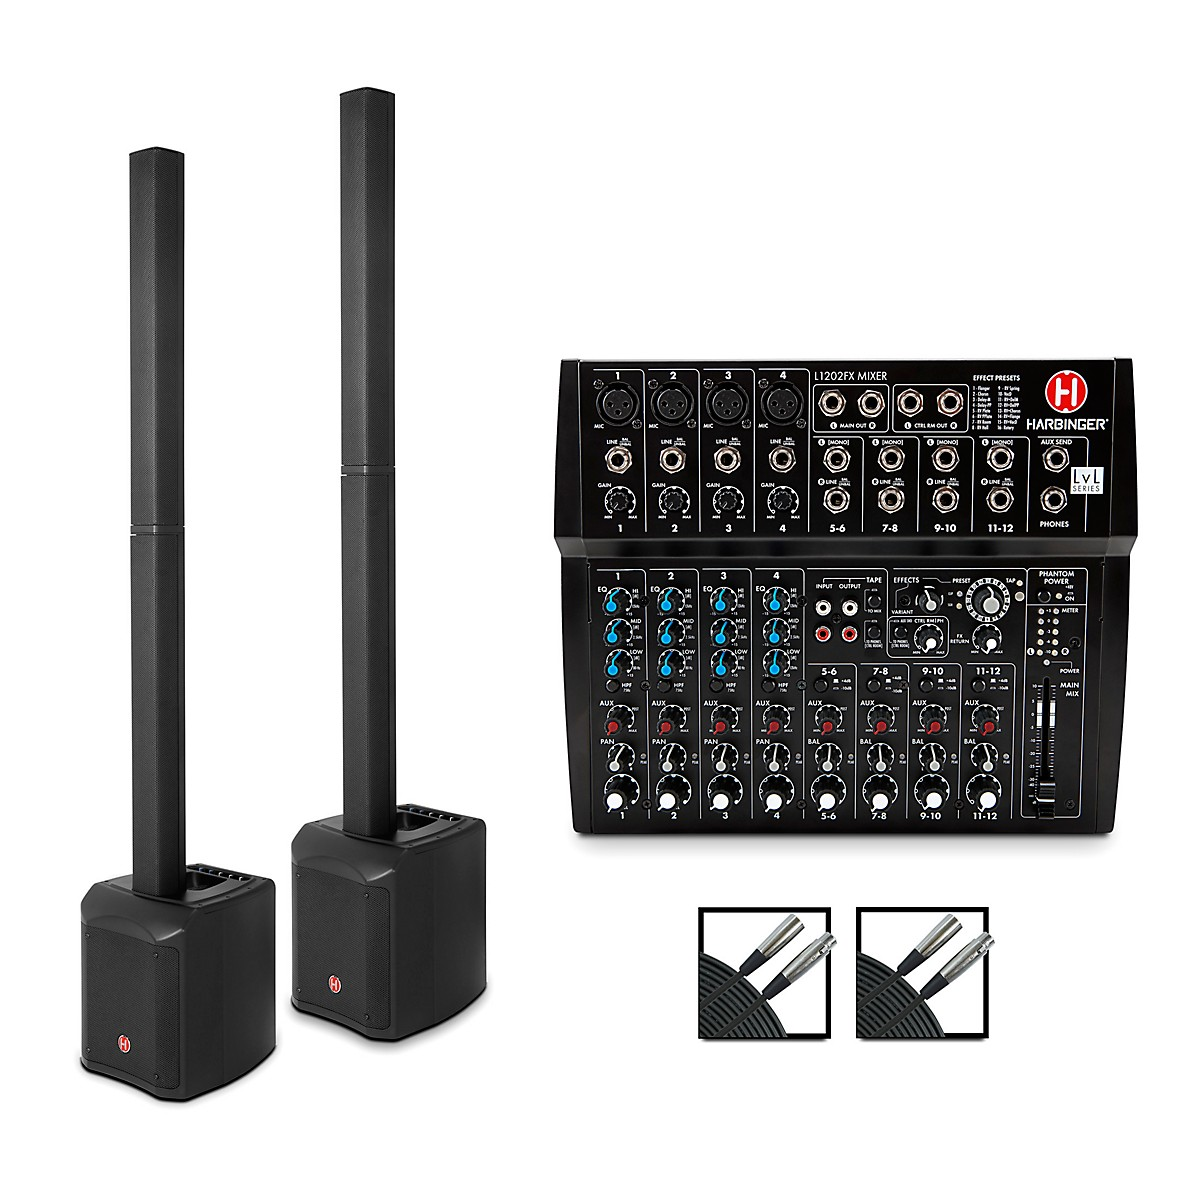 Harbinger MLS900 Personal Line Array Pair with Harbinger L1202 Mixer and Cables